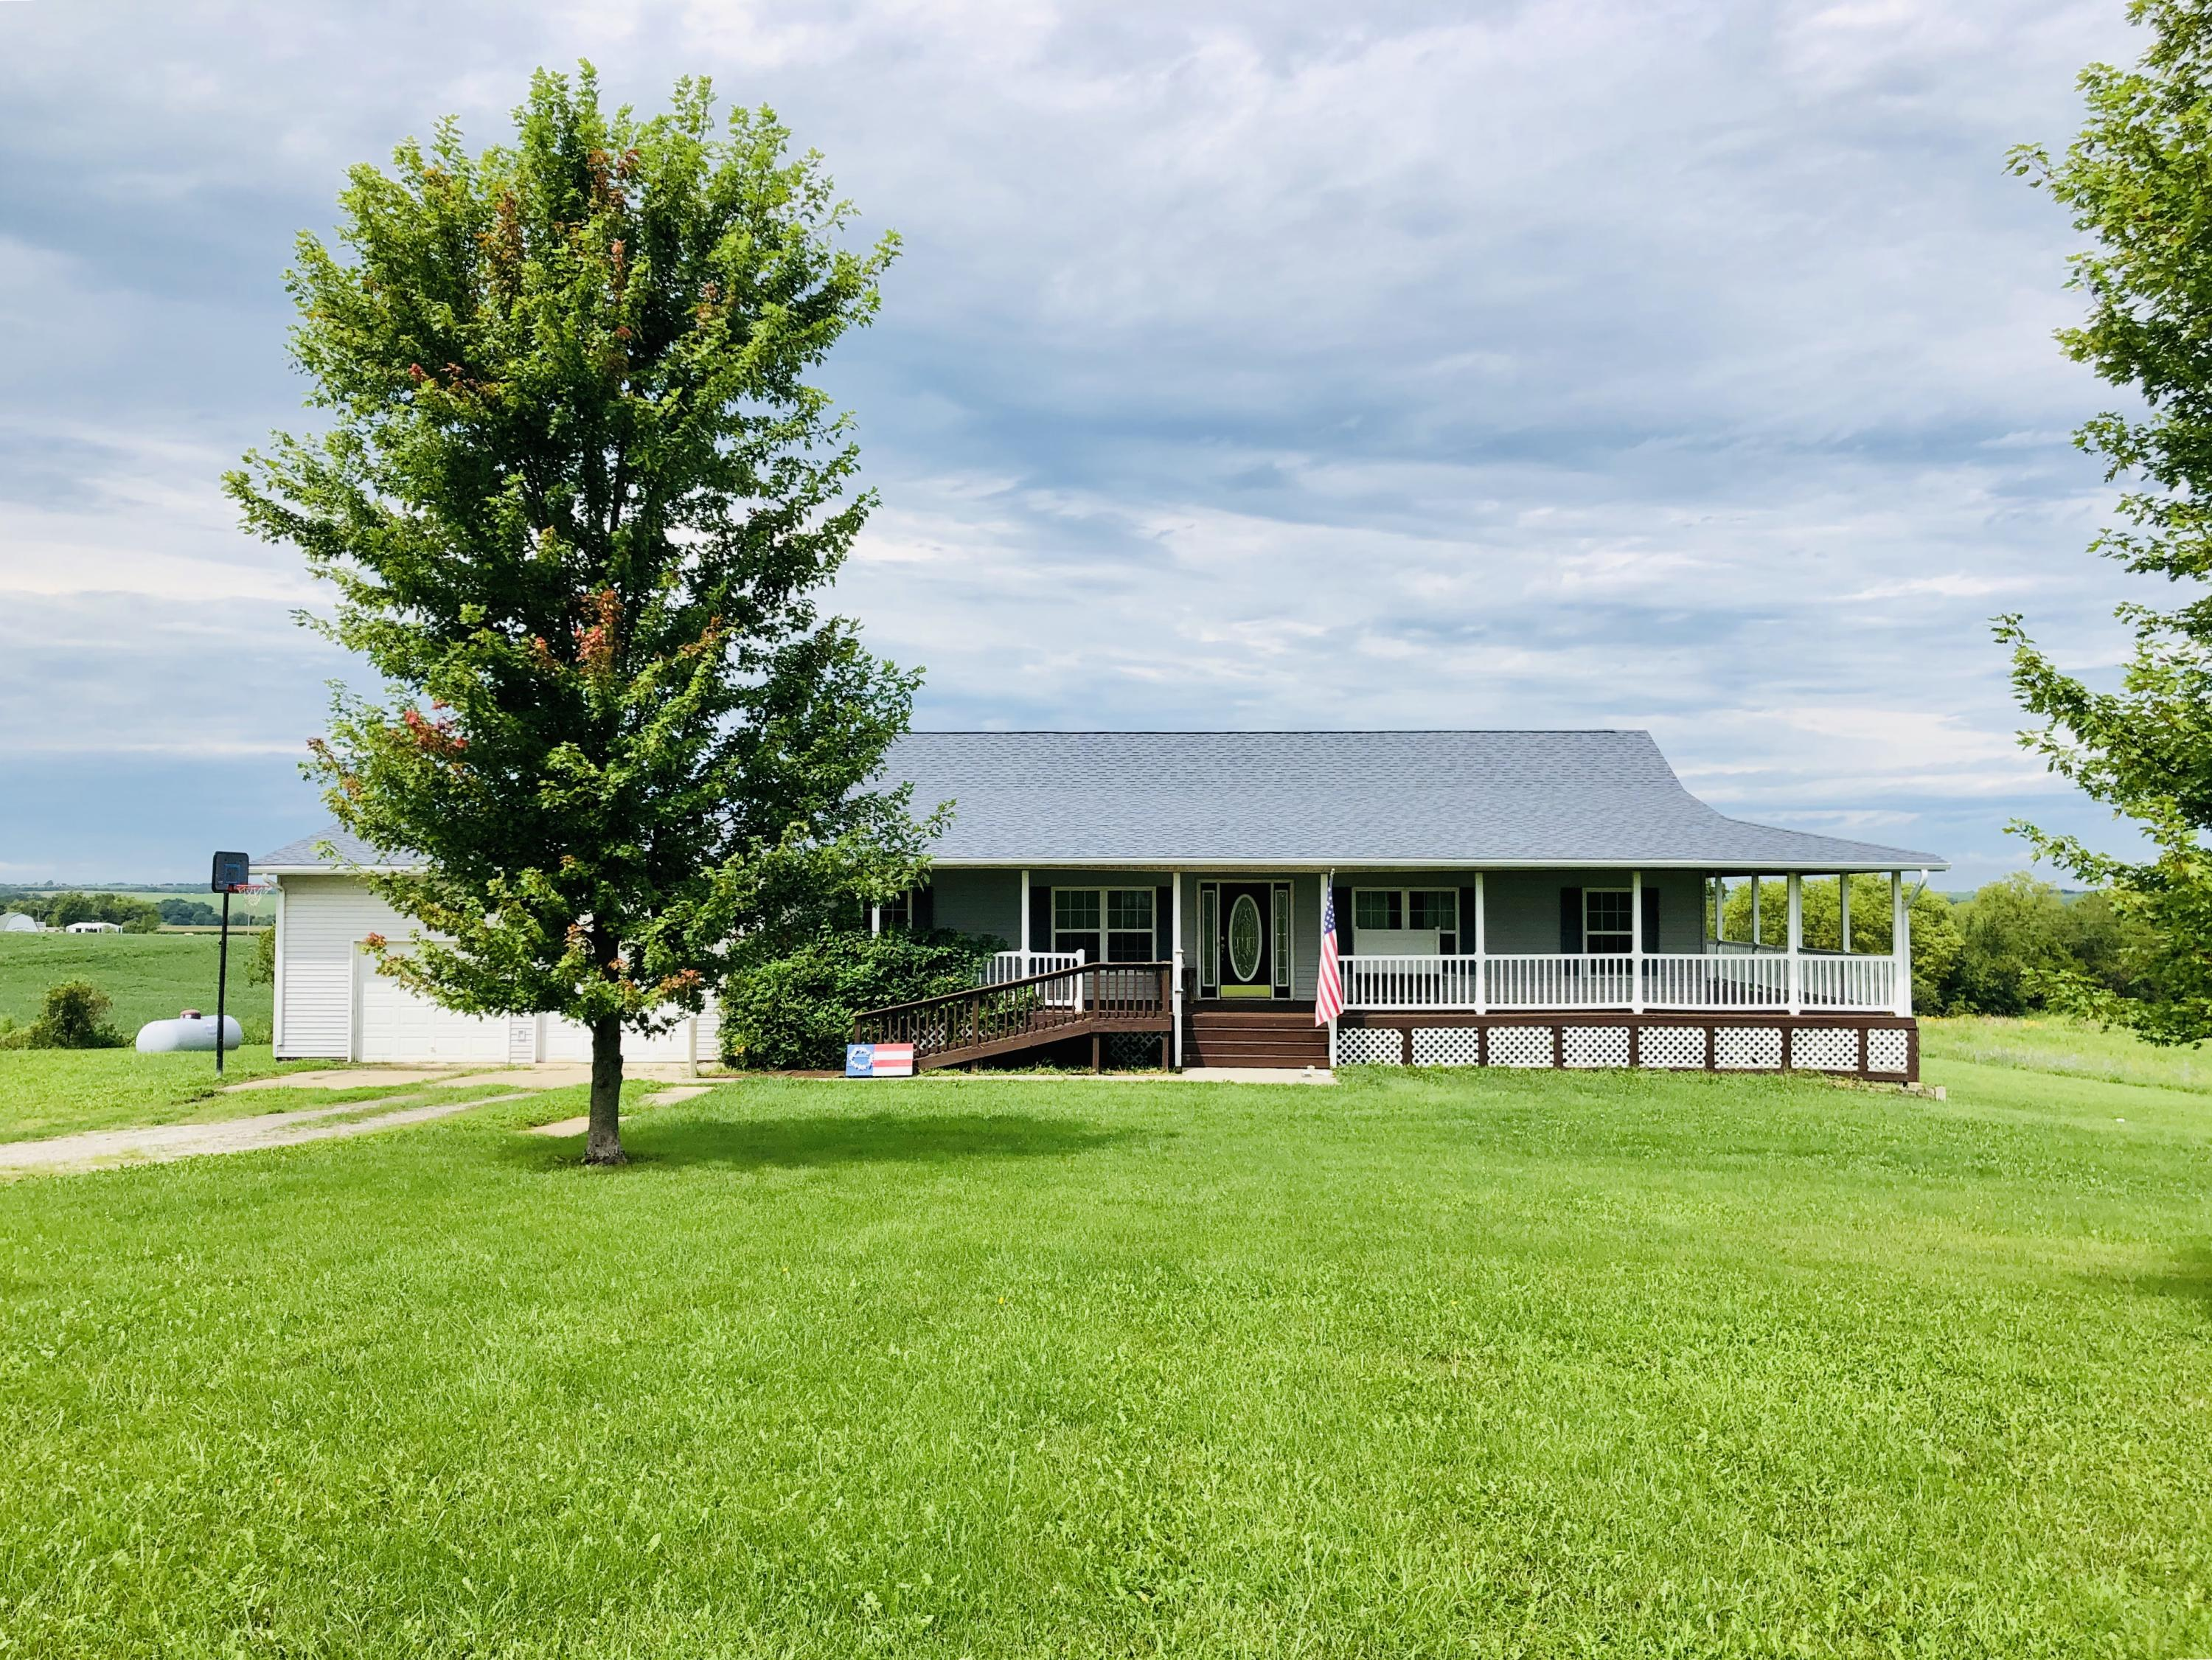 39595 STATE HWY 46, Parnell, Missouri 64475, 5 Bedrooms Bedrooms, ,3 BathroomsBathrooms,Residential,STATE HWY 46,4546